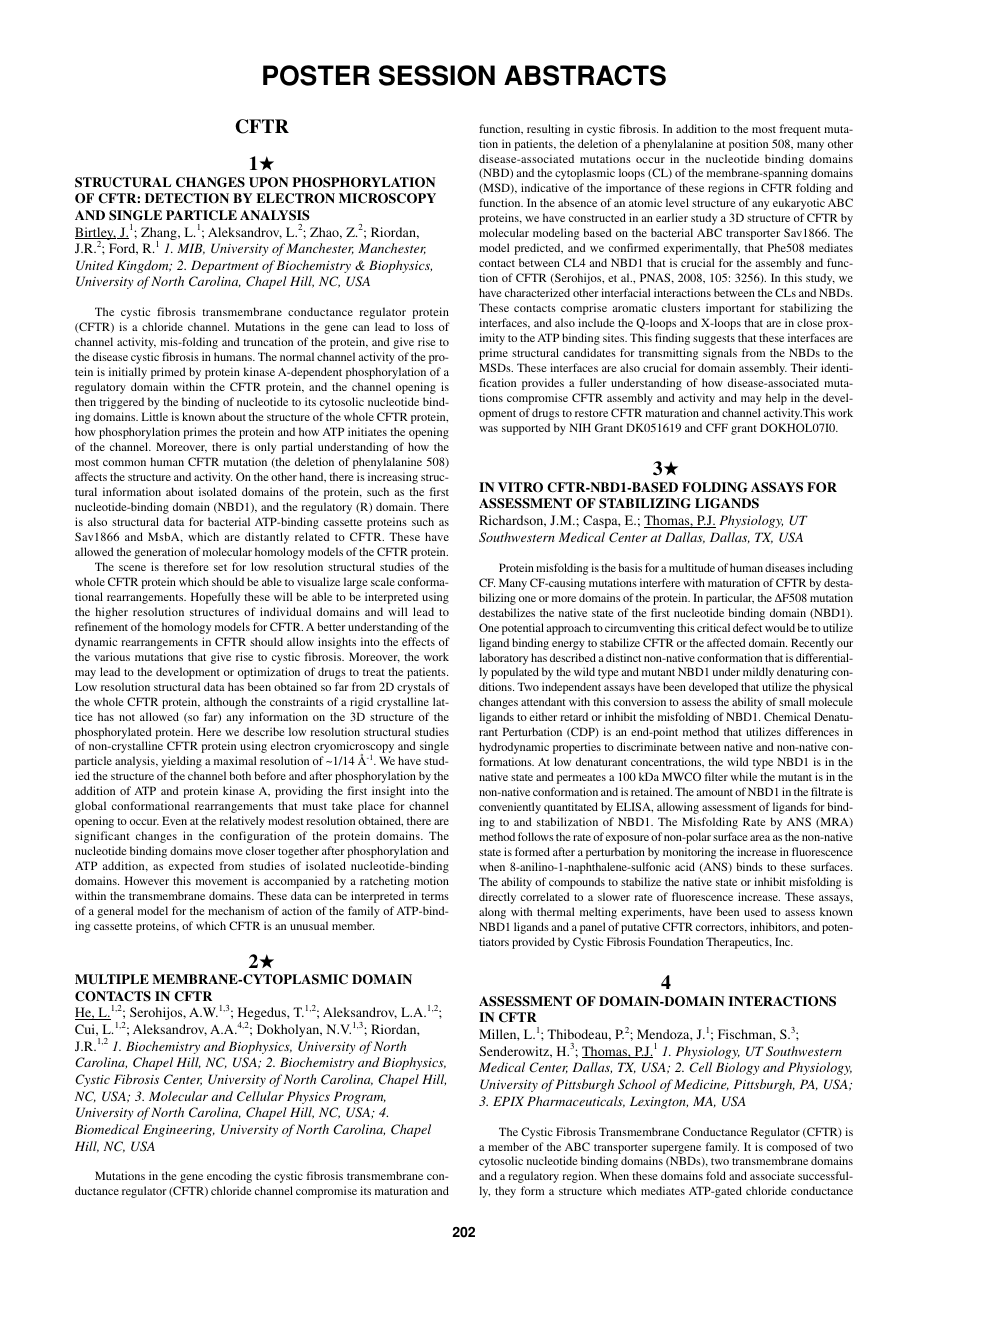 Poster Session Abstracts – topic of research paper in